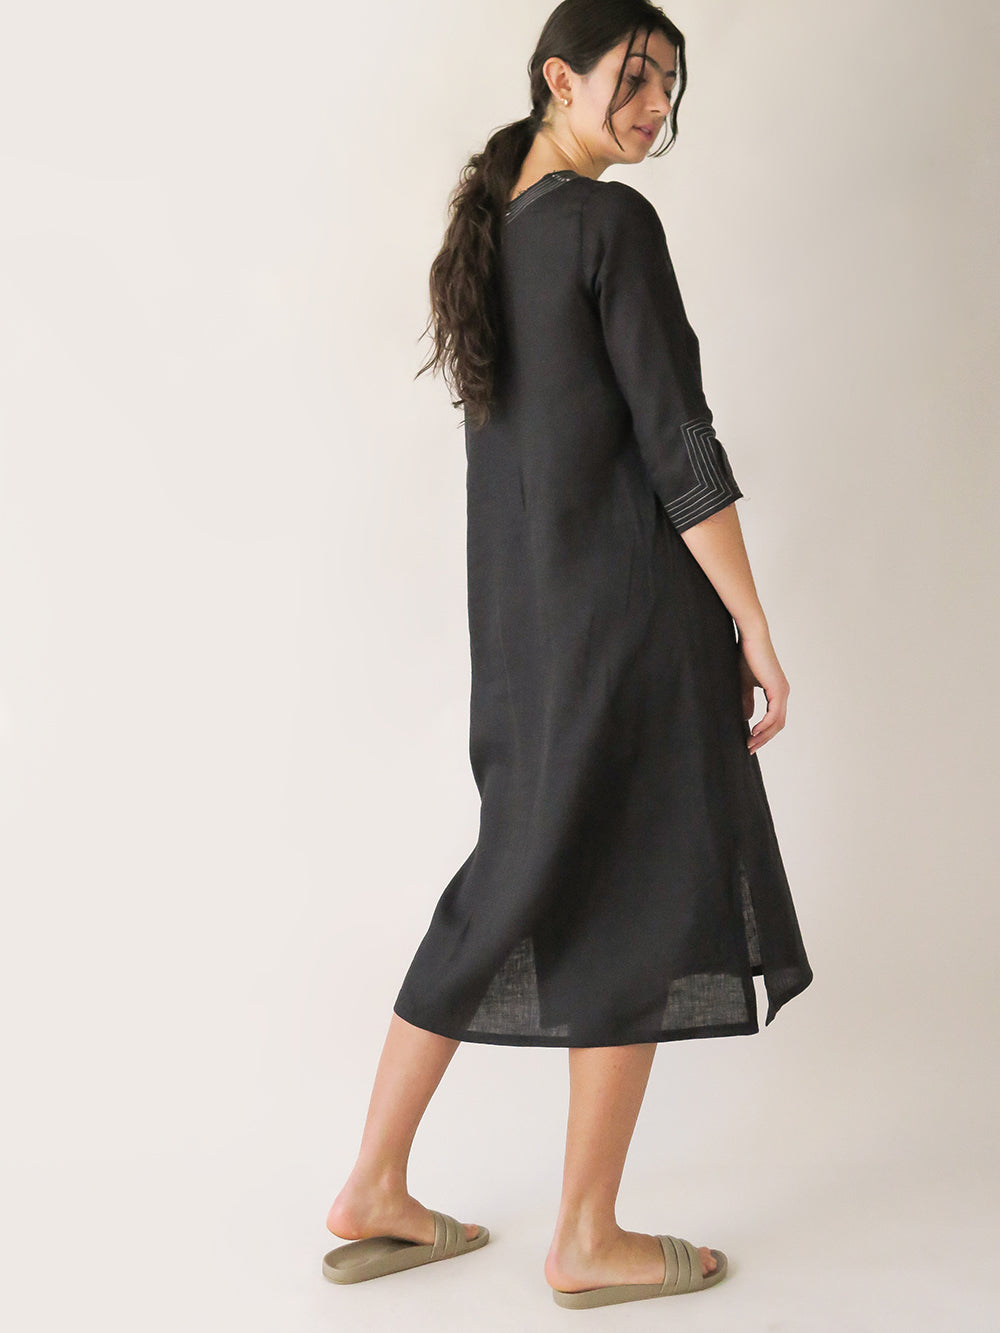 maeve dress in black